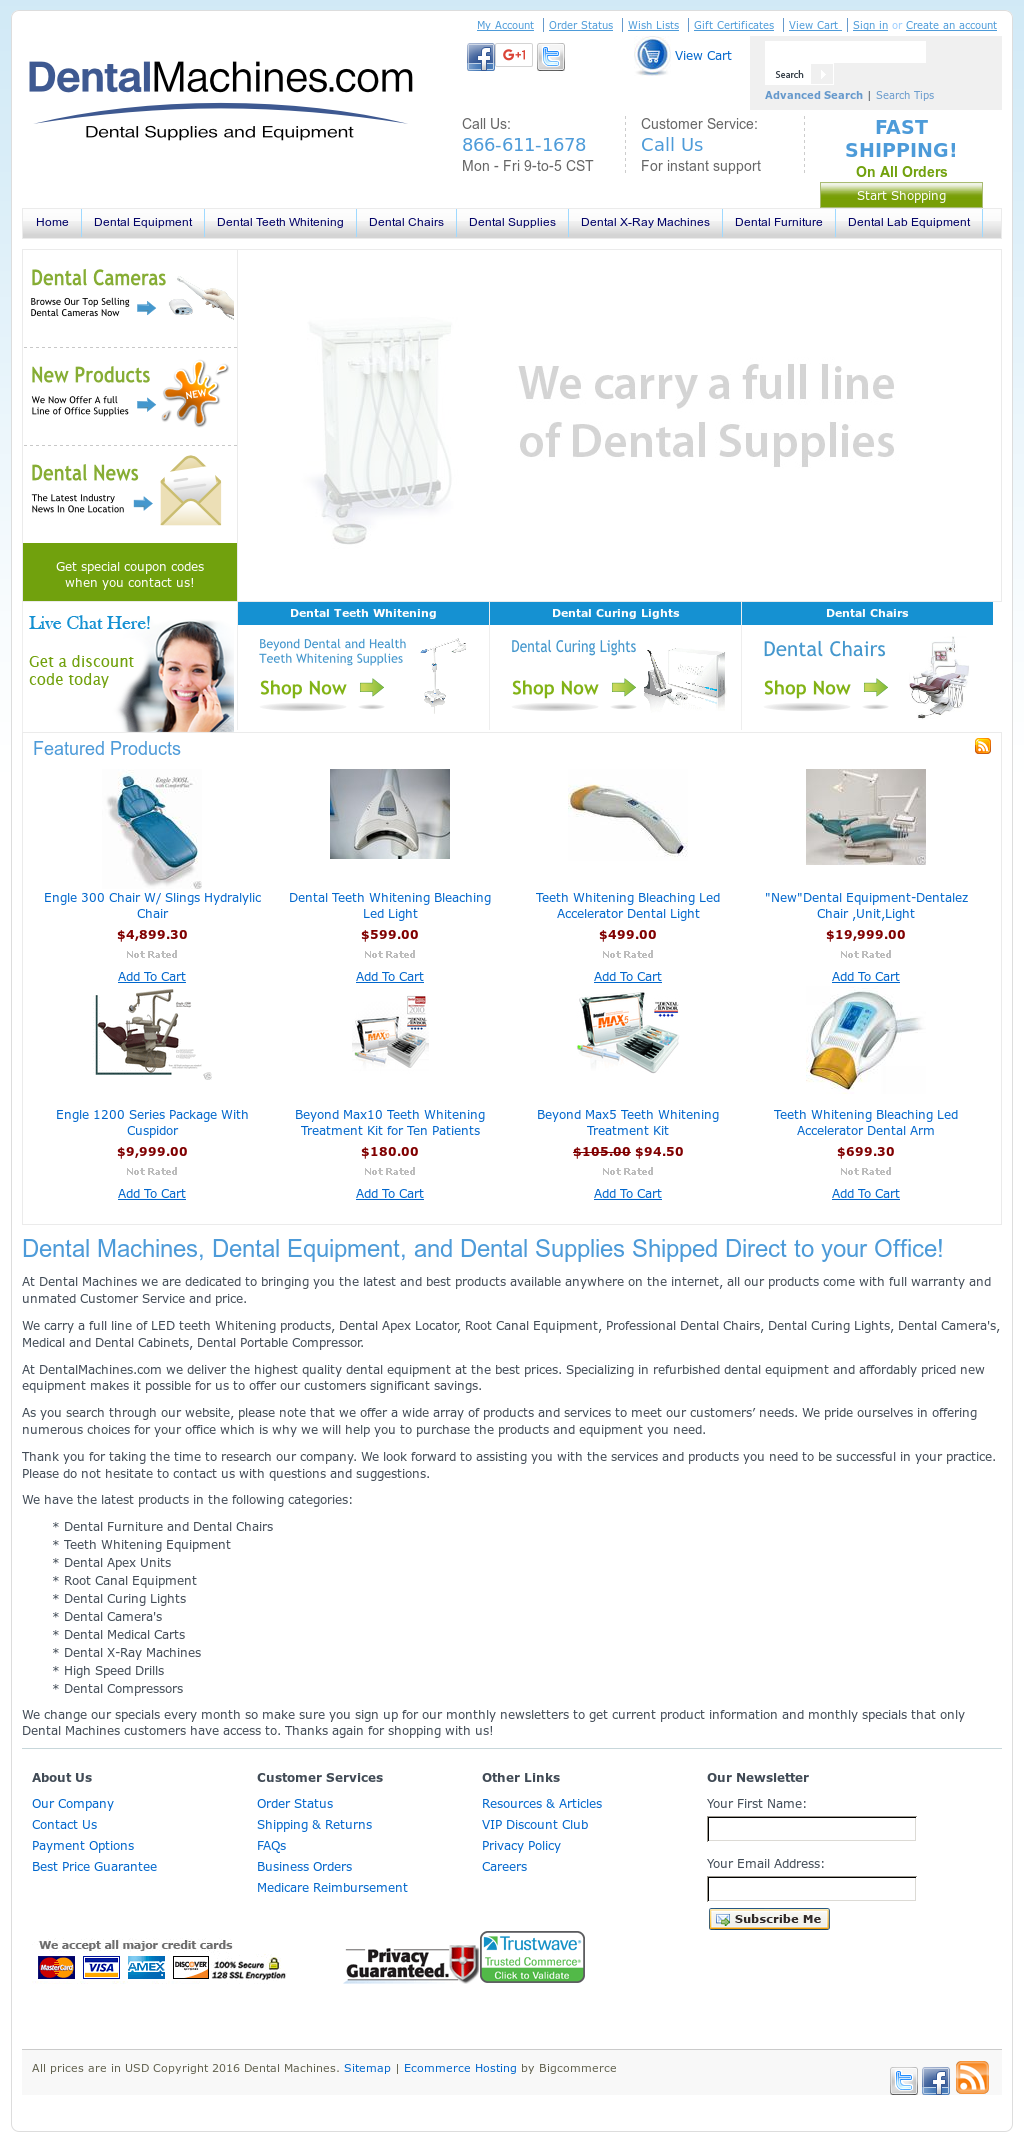 Dental Machines Competitors, Revenue and Employees - Owler Company